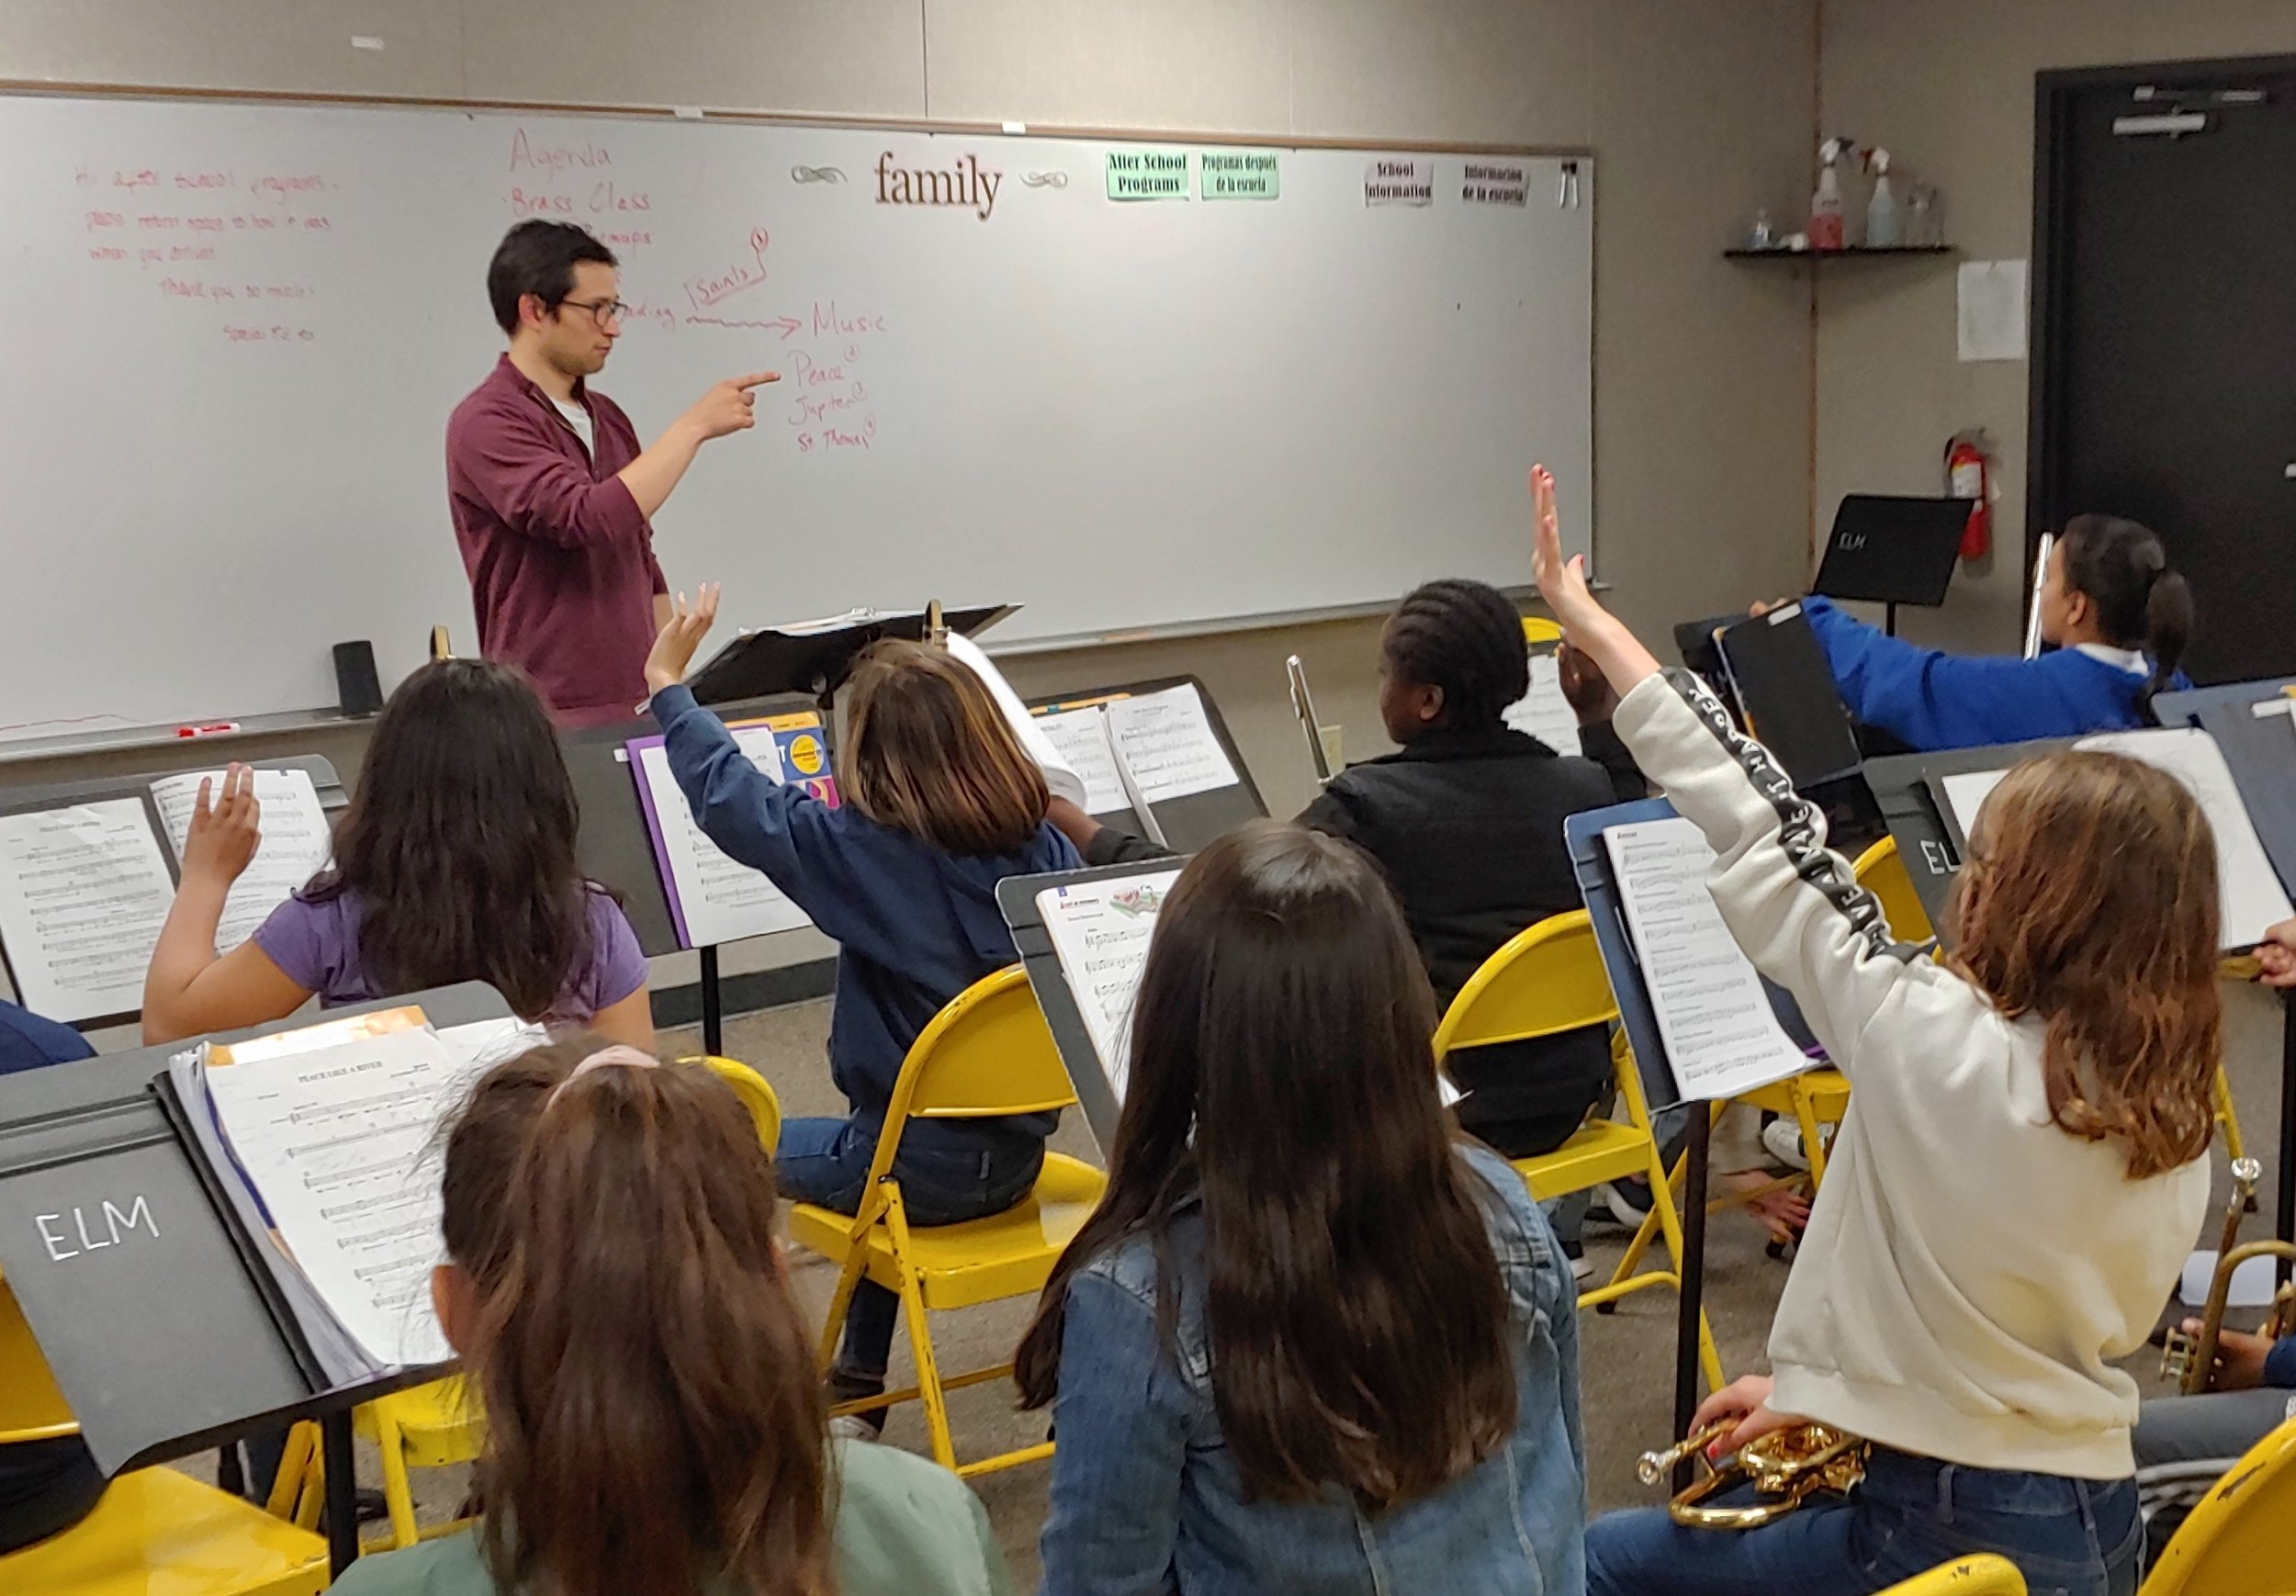 Musicianship is an important element of music education at ELM